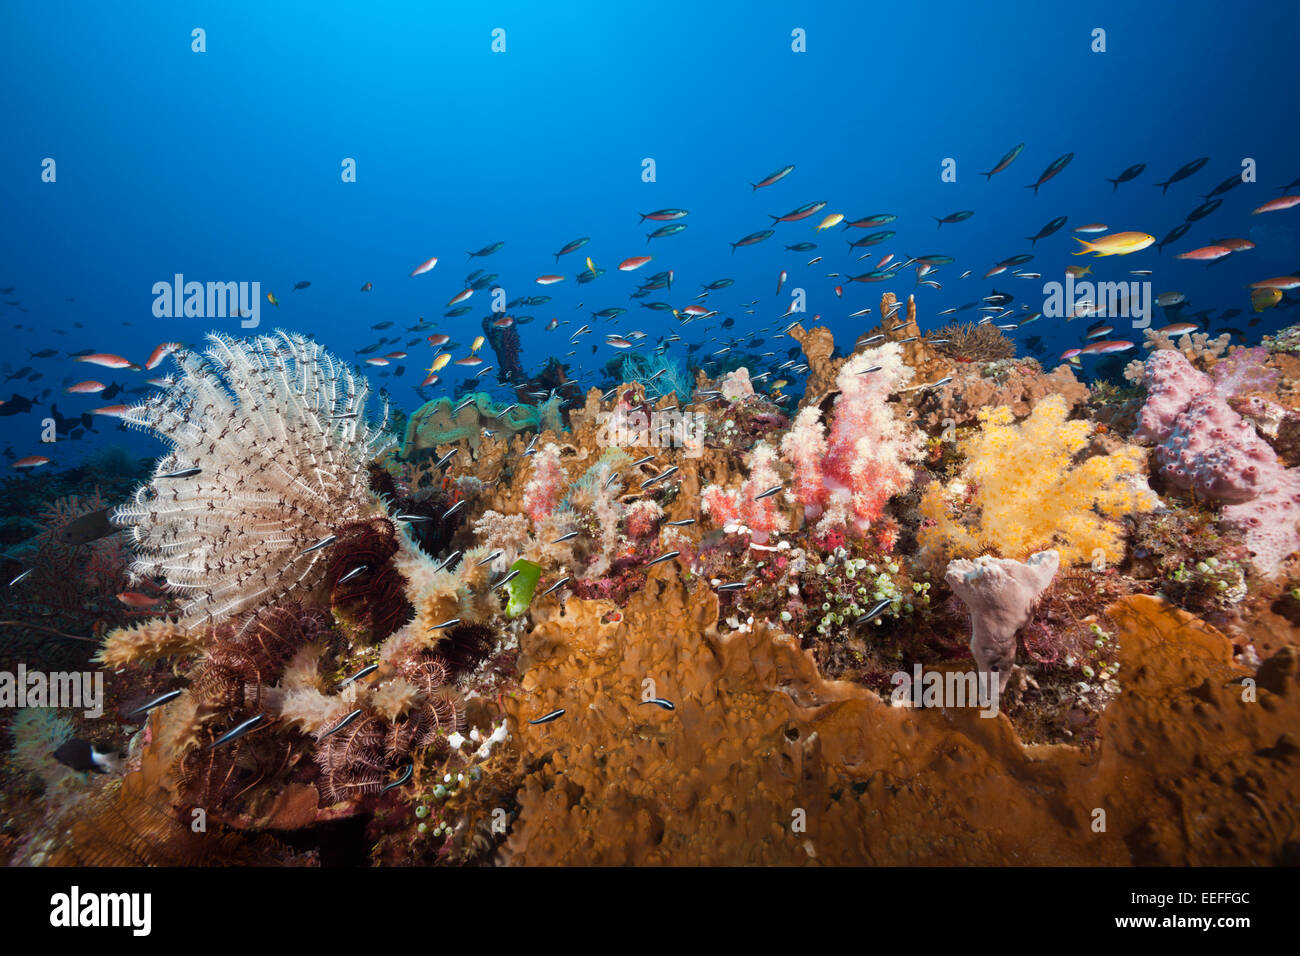 Colored Coral Reef, Tanimbar Islands, Moluccas, Indonesia - Stock Image